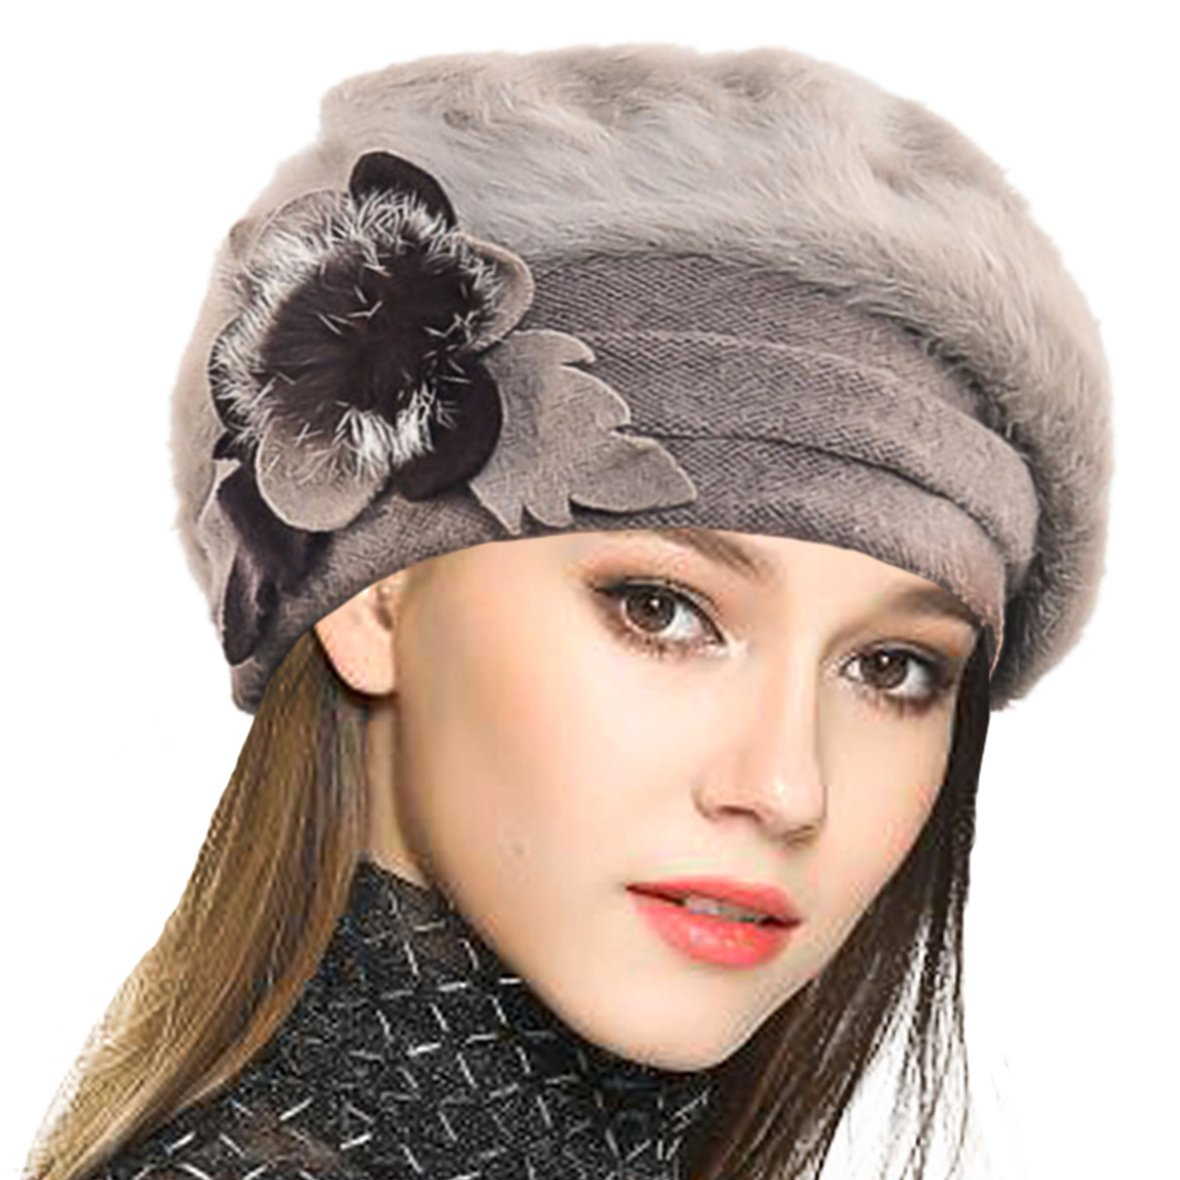 JESSE · RENA Women Wool French Beret Cloche Chic Angola Beanie Skull Cap Winter Hats CF-BR022-Black